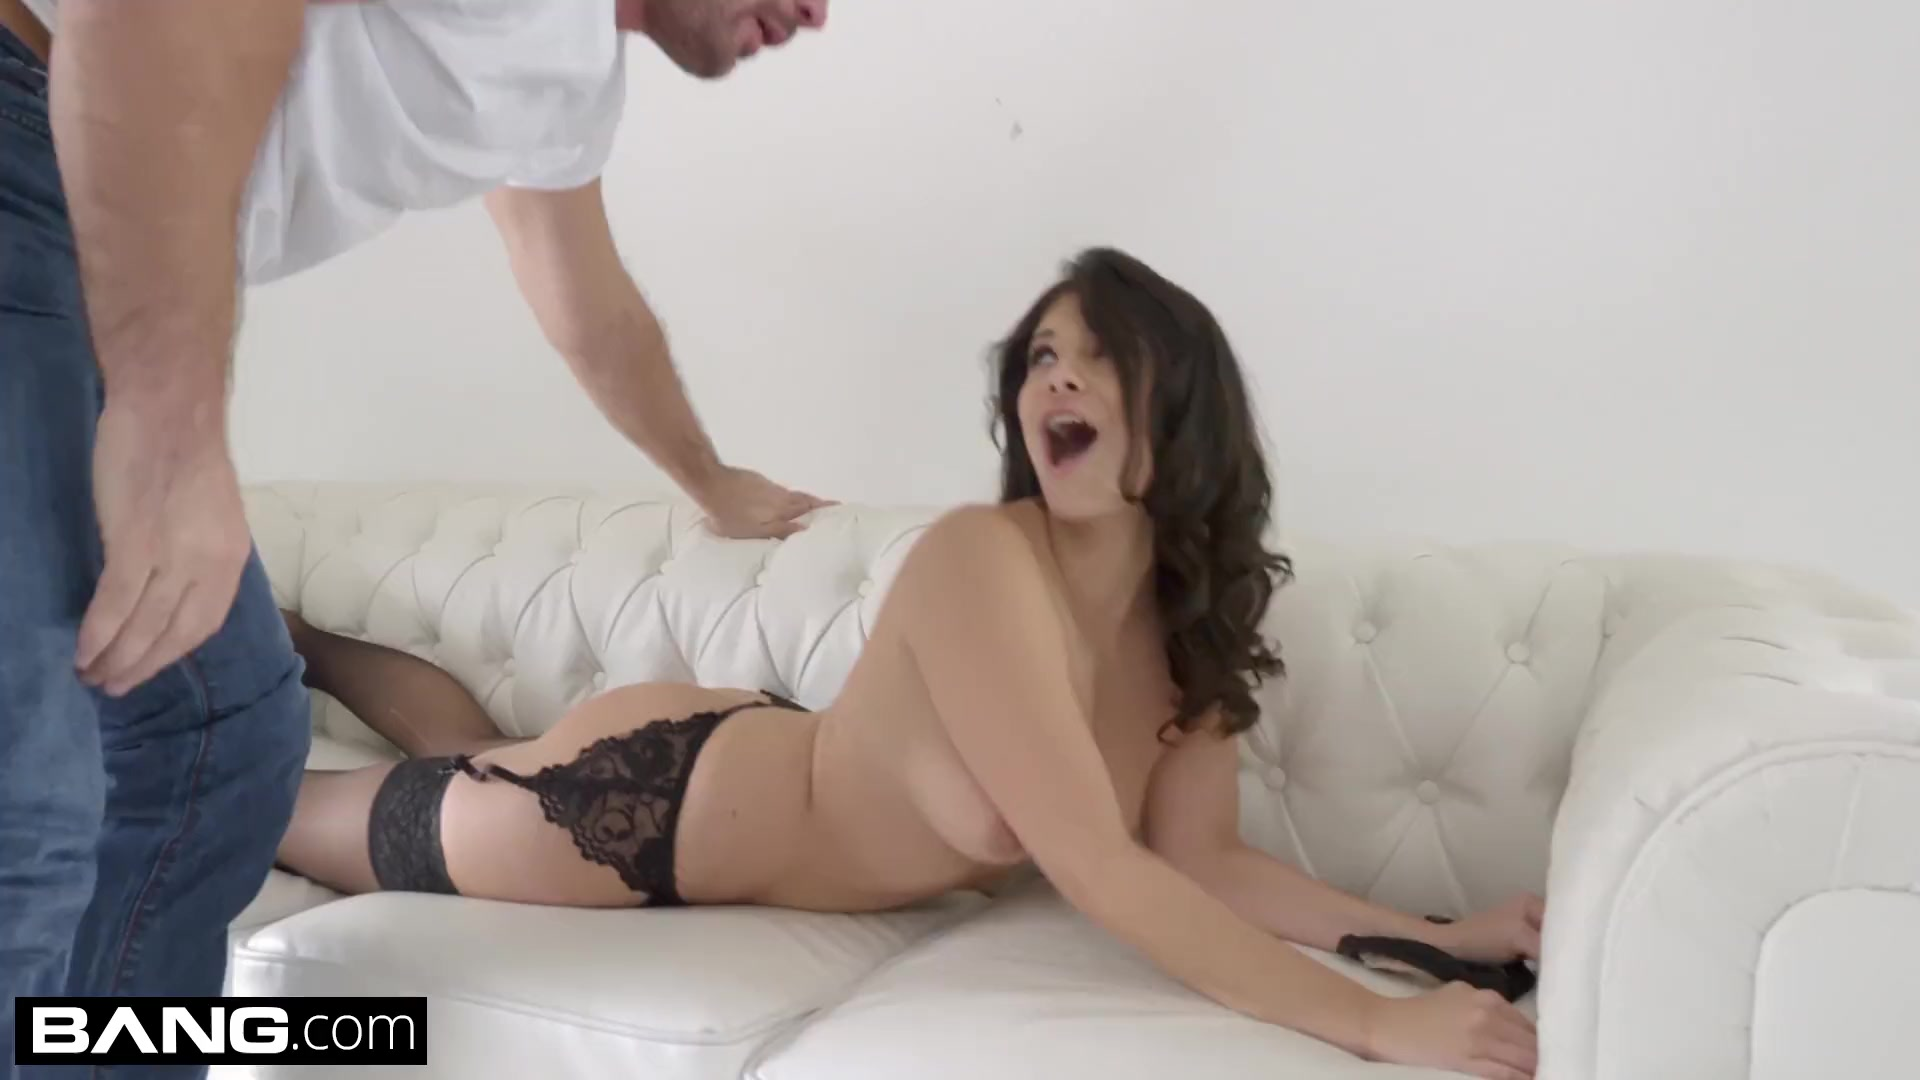 Preview 2 of Bang Gonzo - Violet Starr Takes Fat Dick Deep In Her Pussy